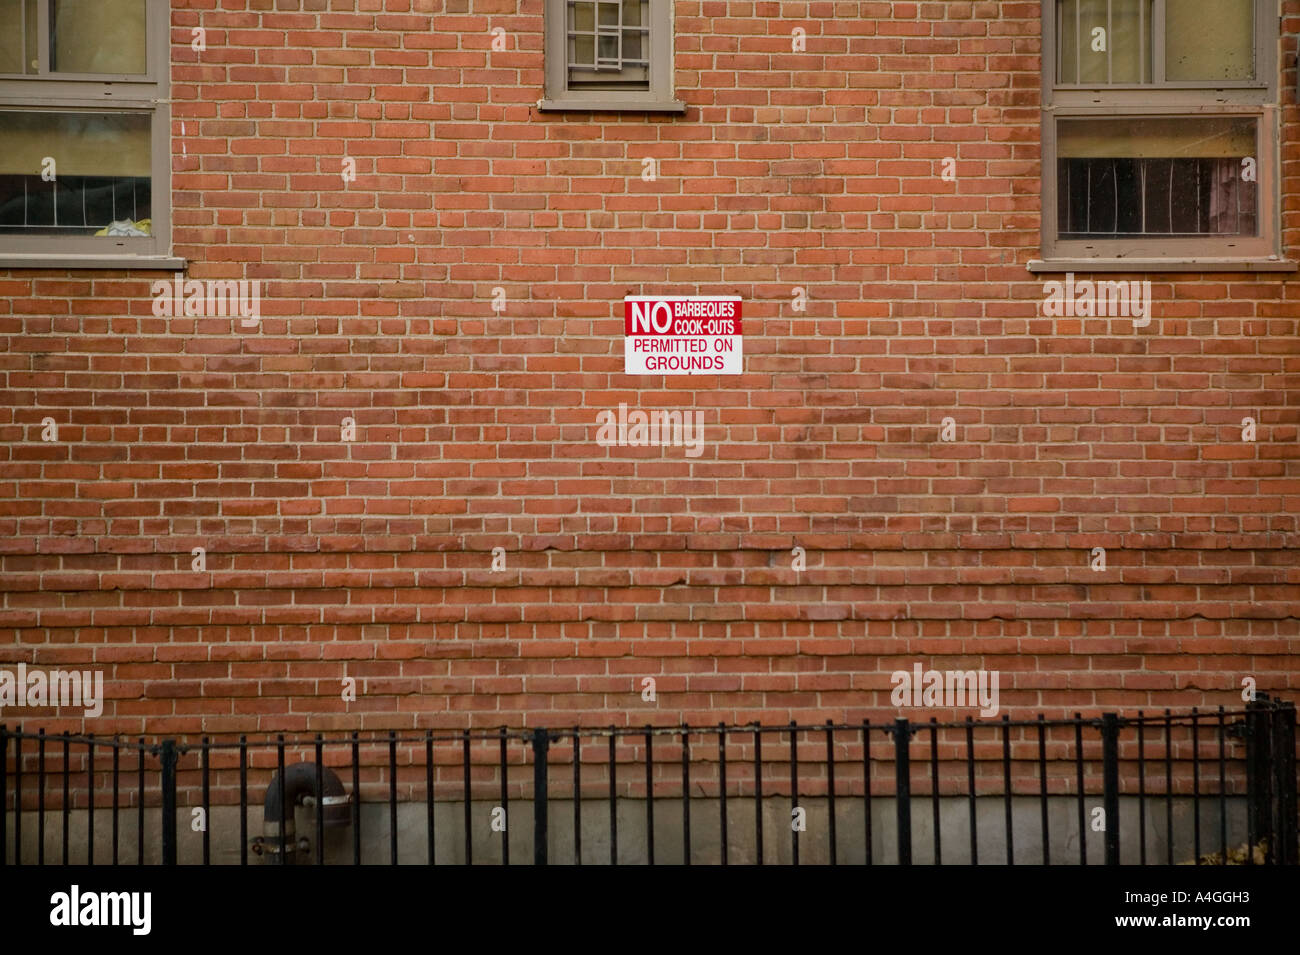 A sign on a wall in uptown new york city reads No Barbecues Cook Outs Permitted On Grounds usa november 2004 - Stock Image